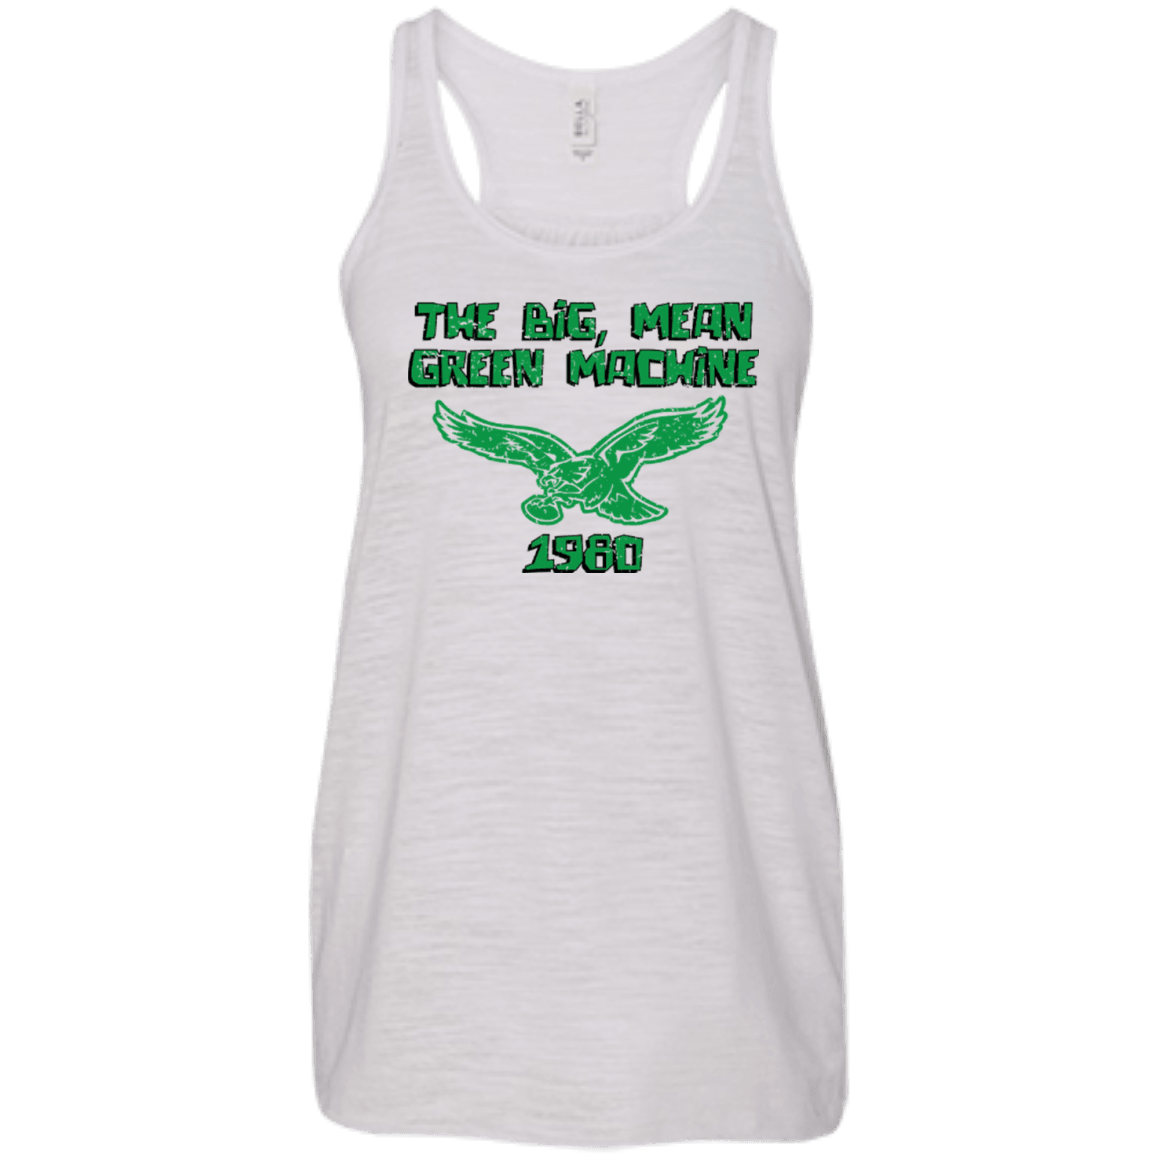 1980 Philadelphia Eagles Inspired Flowy Racerback Tank - Generation T